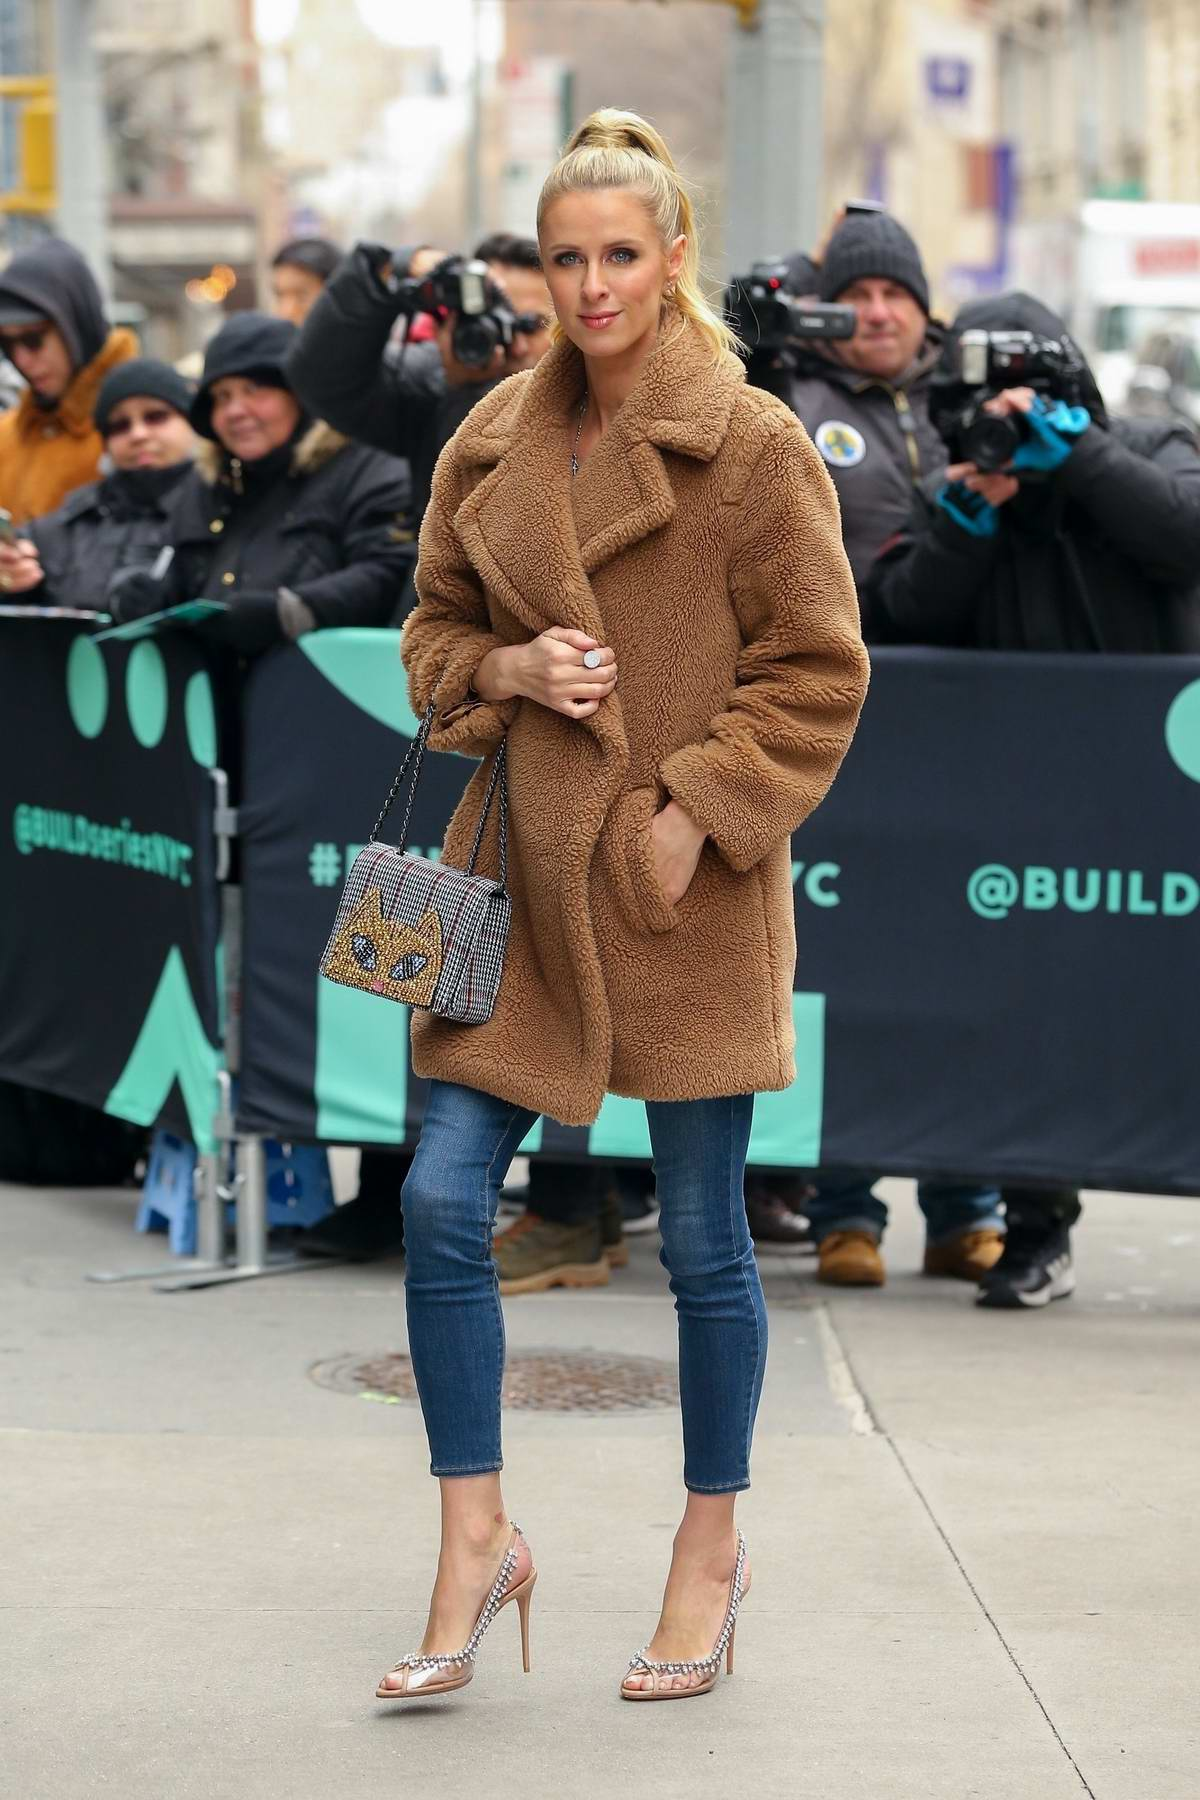 Nicky Hilton arrives at AOL Build Series wearing a brown jacket and blue skinny jeans in New York City